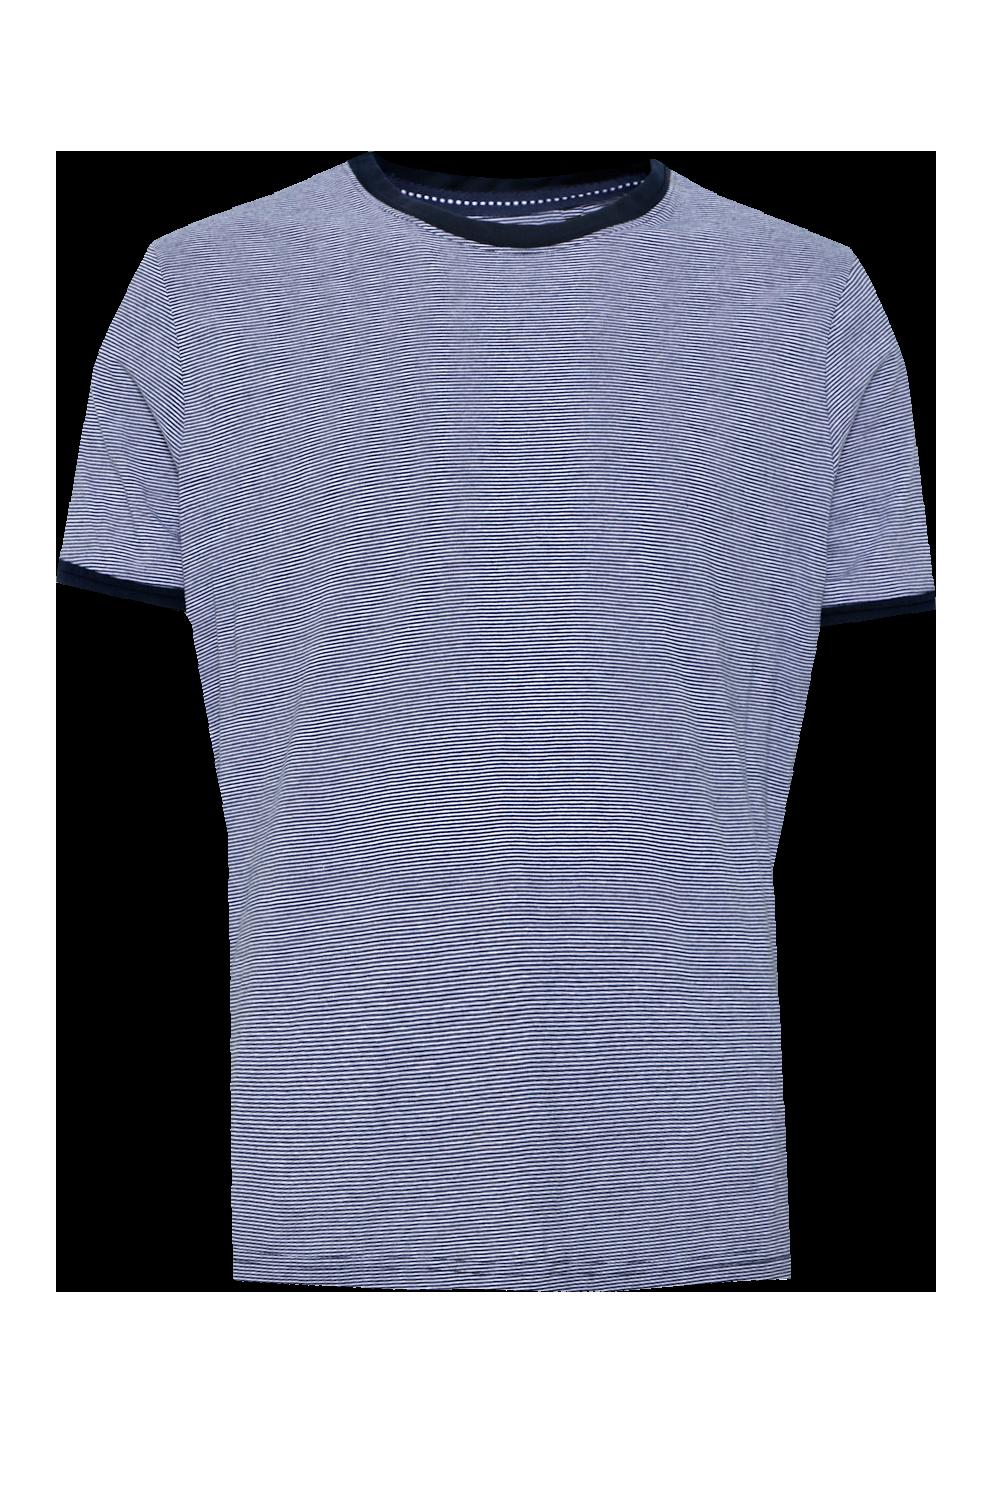 boohooMAN navy Stripe Crew Neck T-Shirt With Contrast Collar